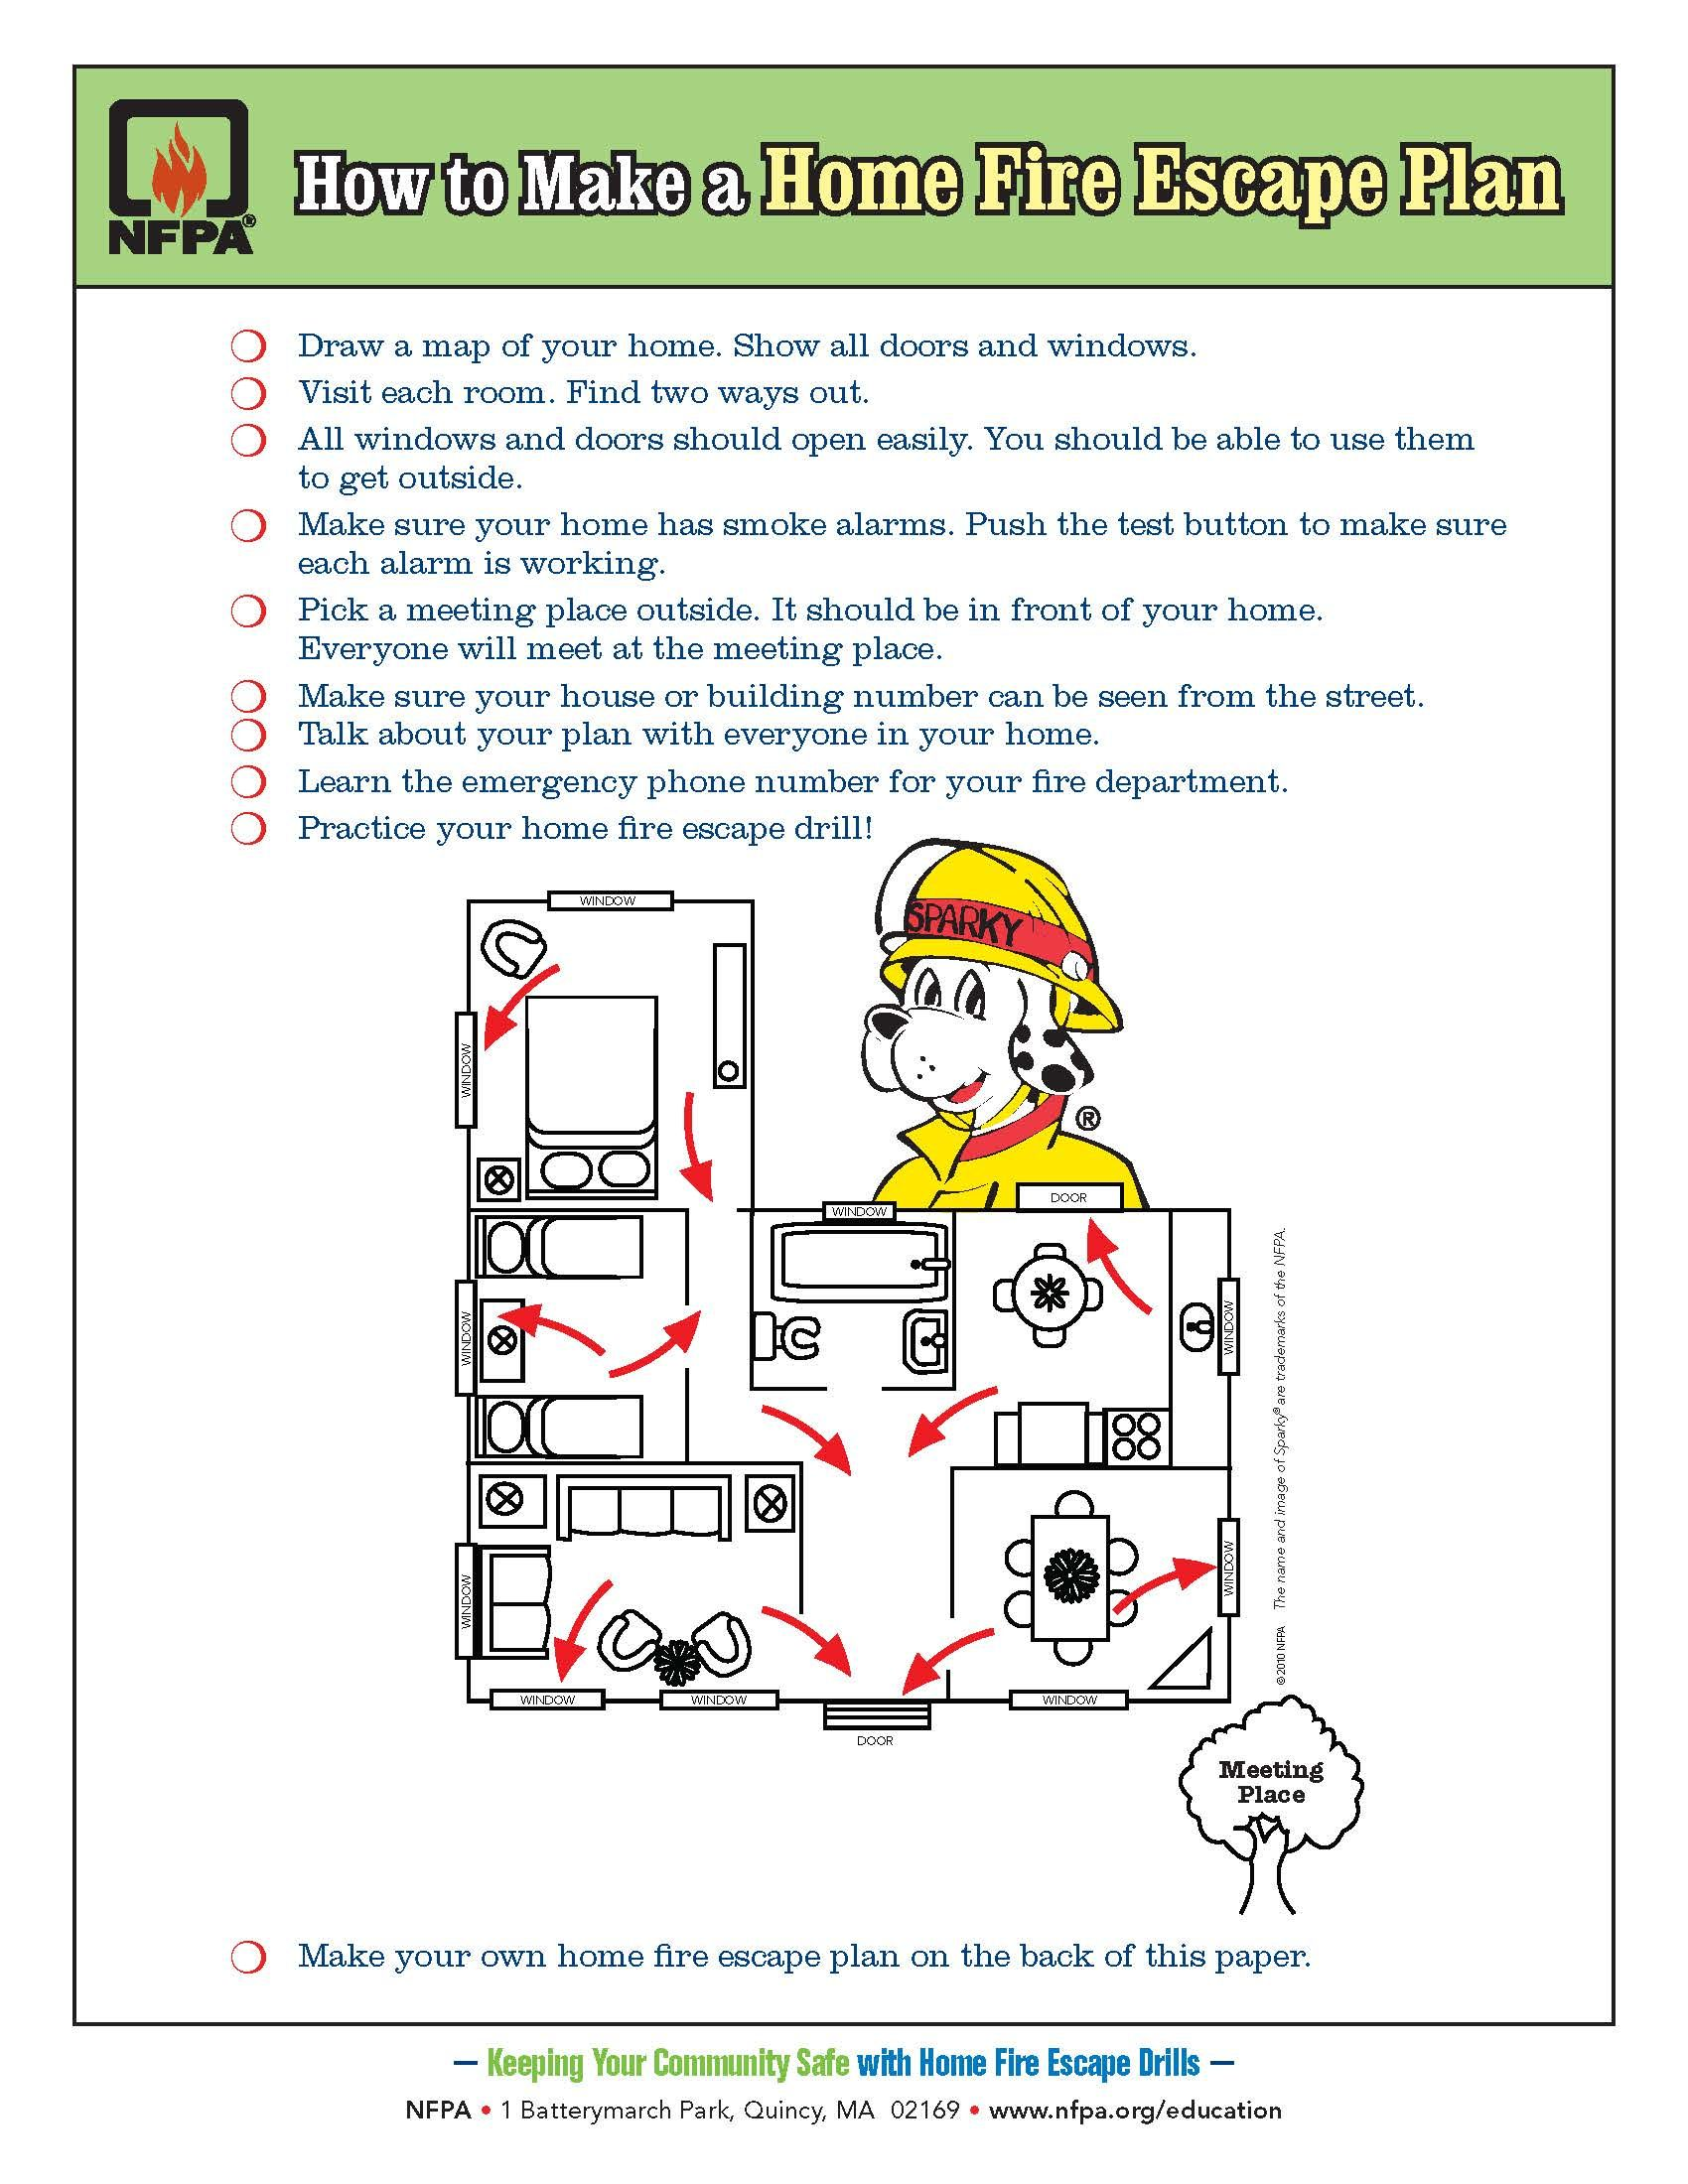 example of fire exit diagram 2008 jeep wrangler stereo wiring draw a home escape plan your kids practice drills at school do you